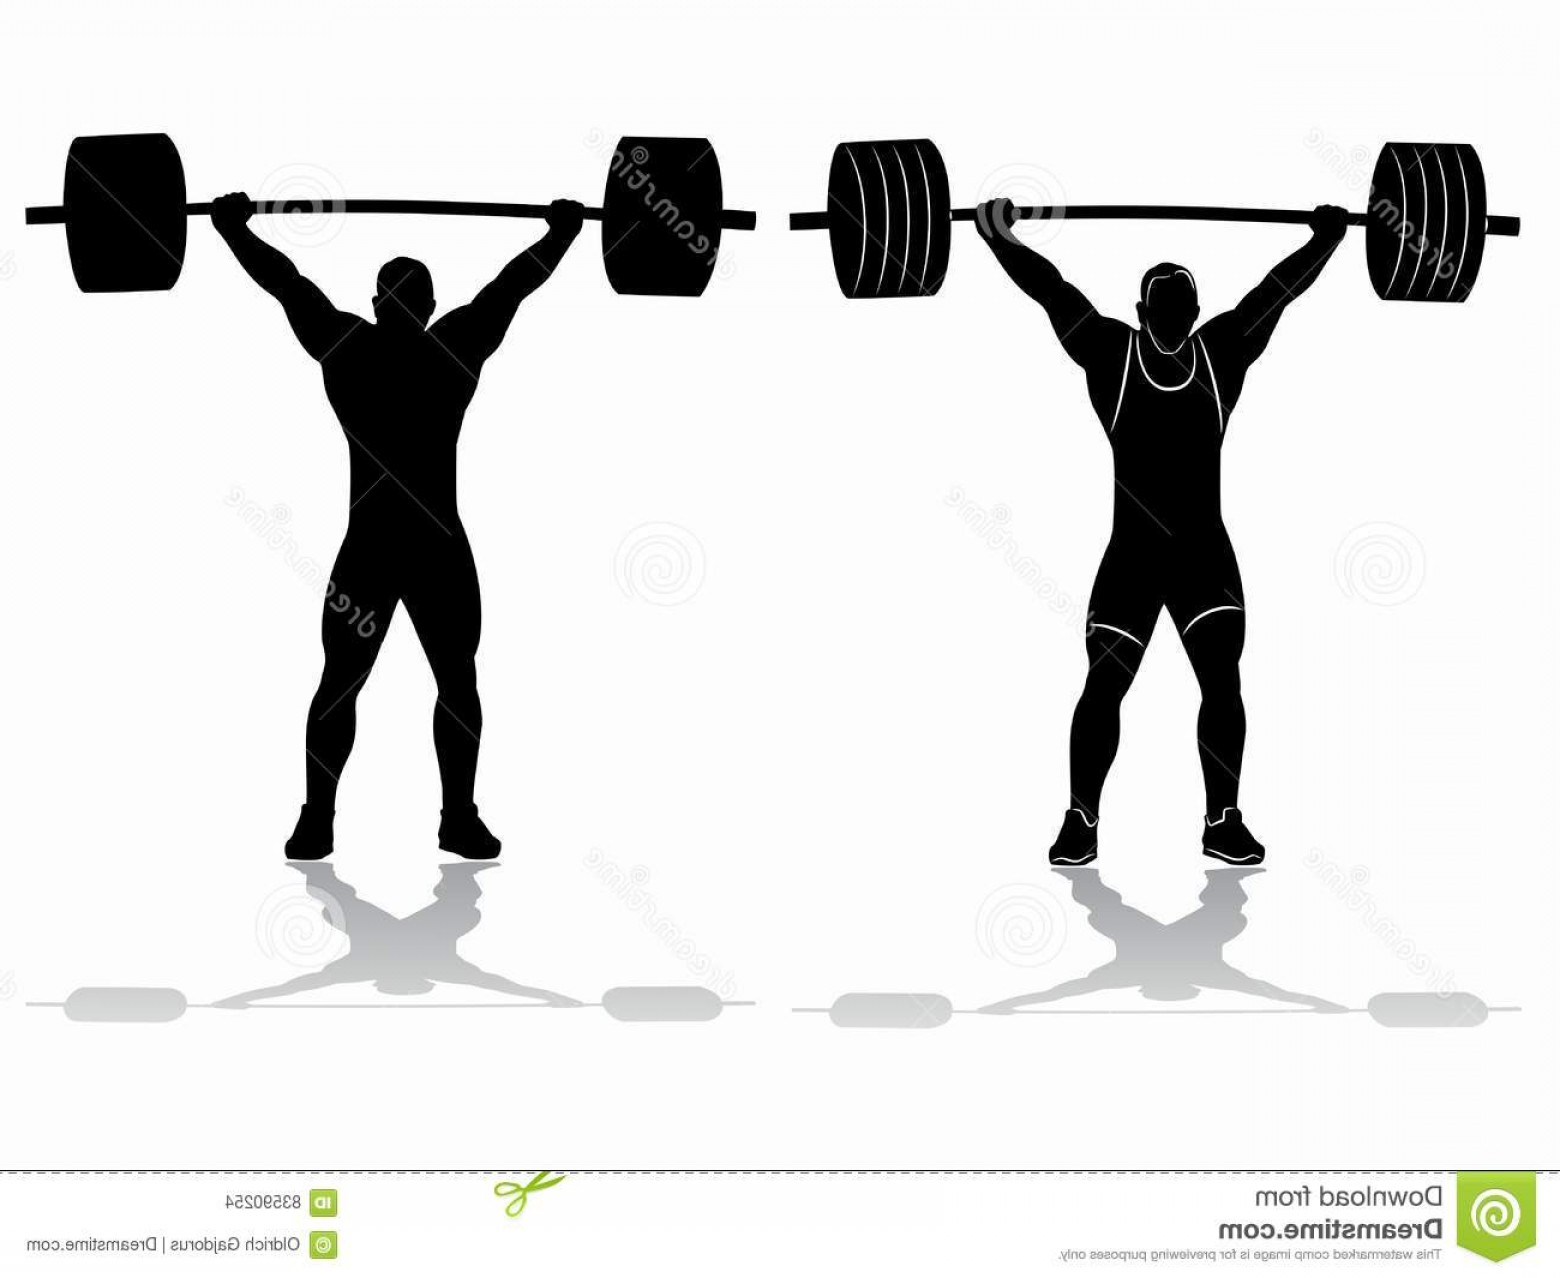 Weightlifter Vector Art: Stock Illustration Silhouette Weightlifter Vector Drawing Barbell Black White White Background Image